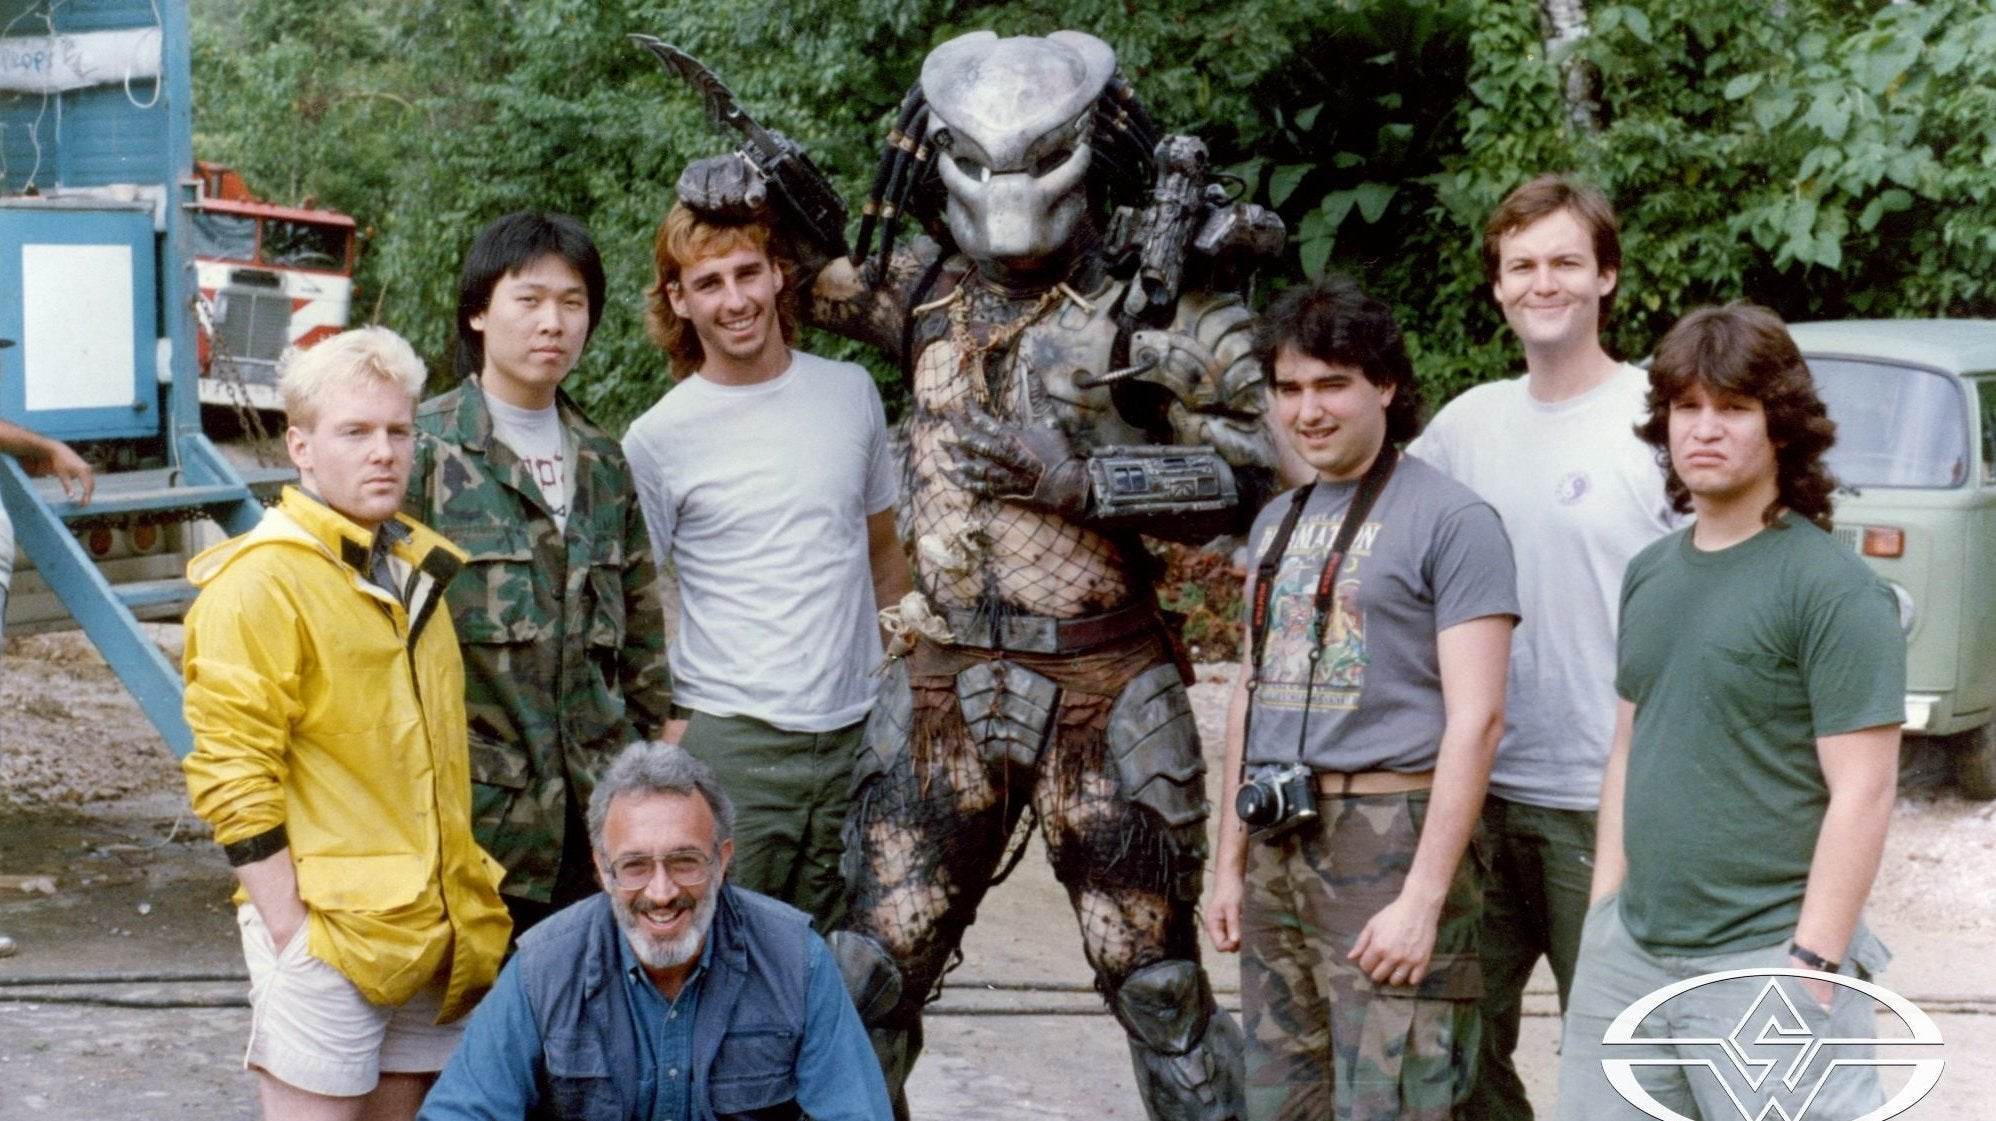 Relive The Creation Of The Original Predator Costume In This Excellently Detailed Video